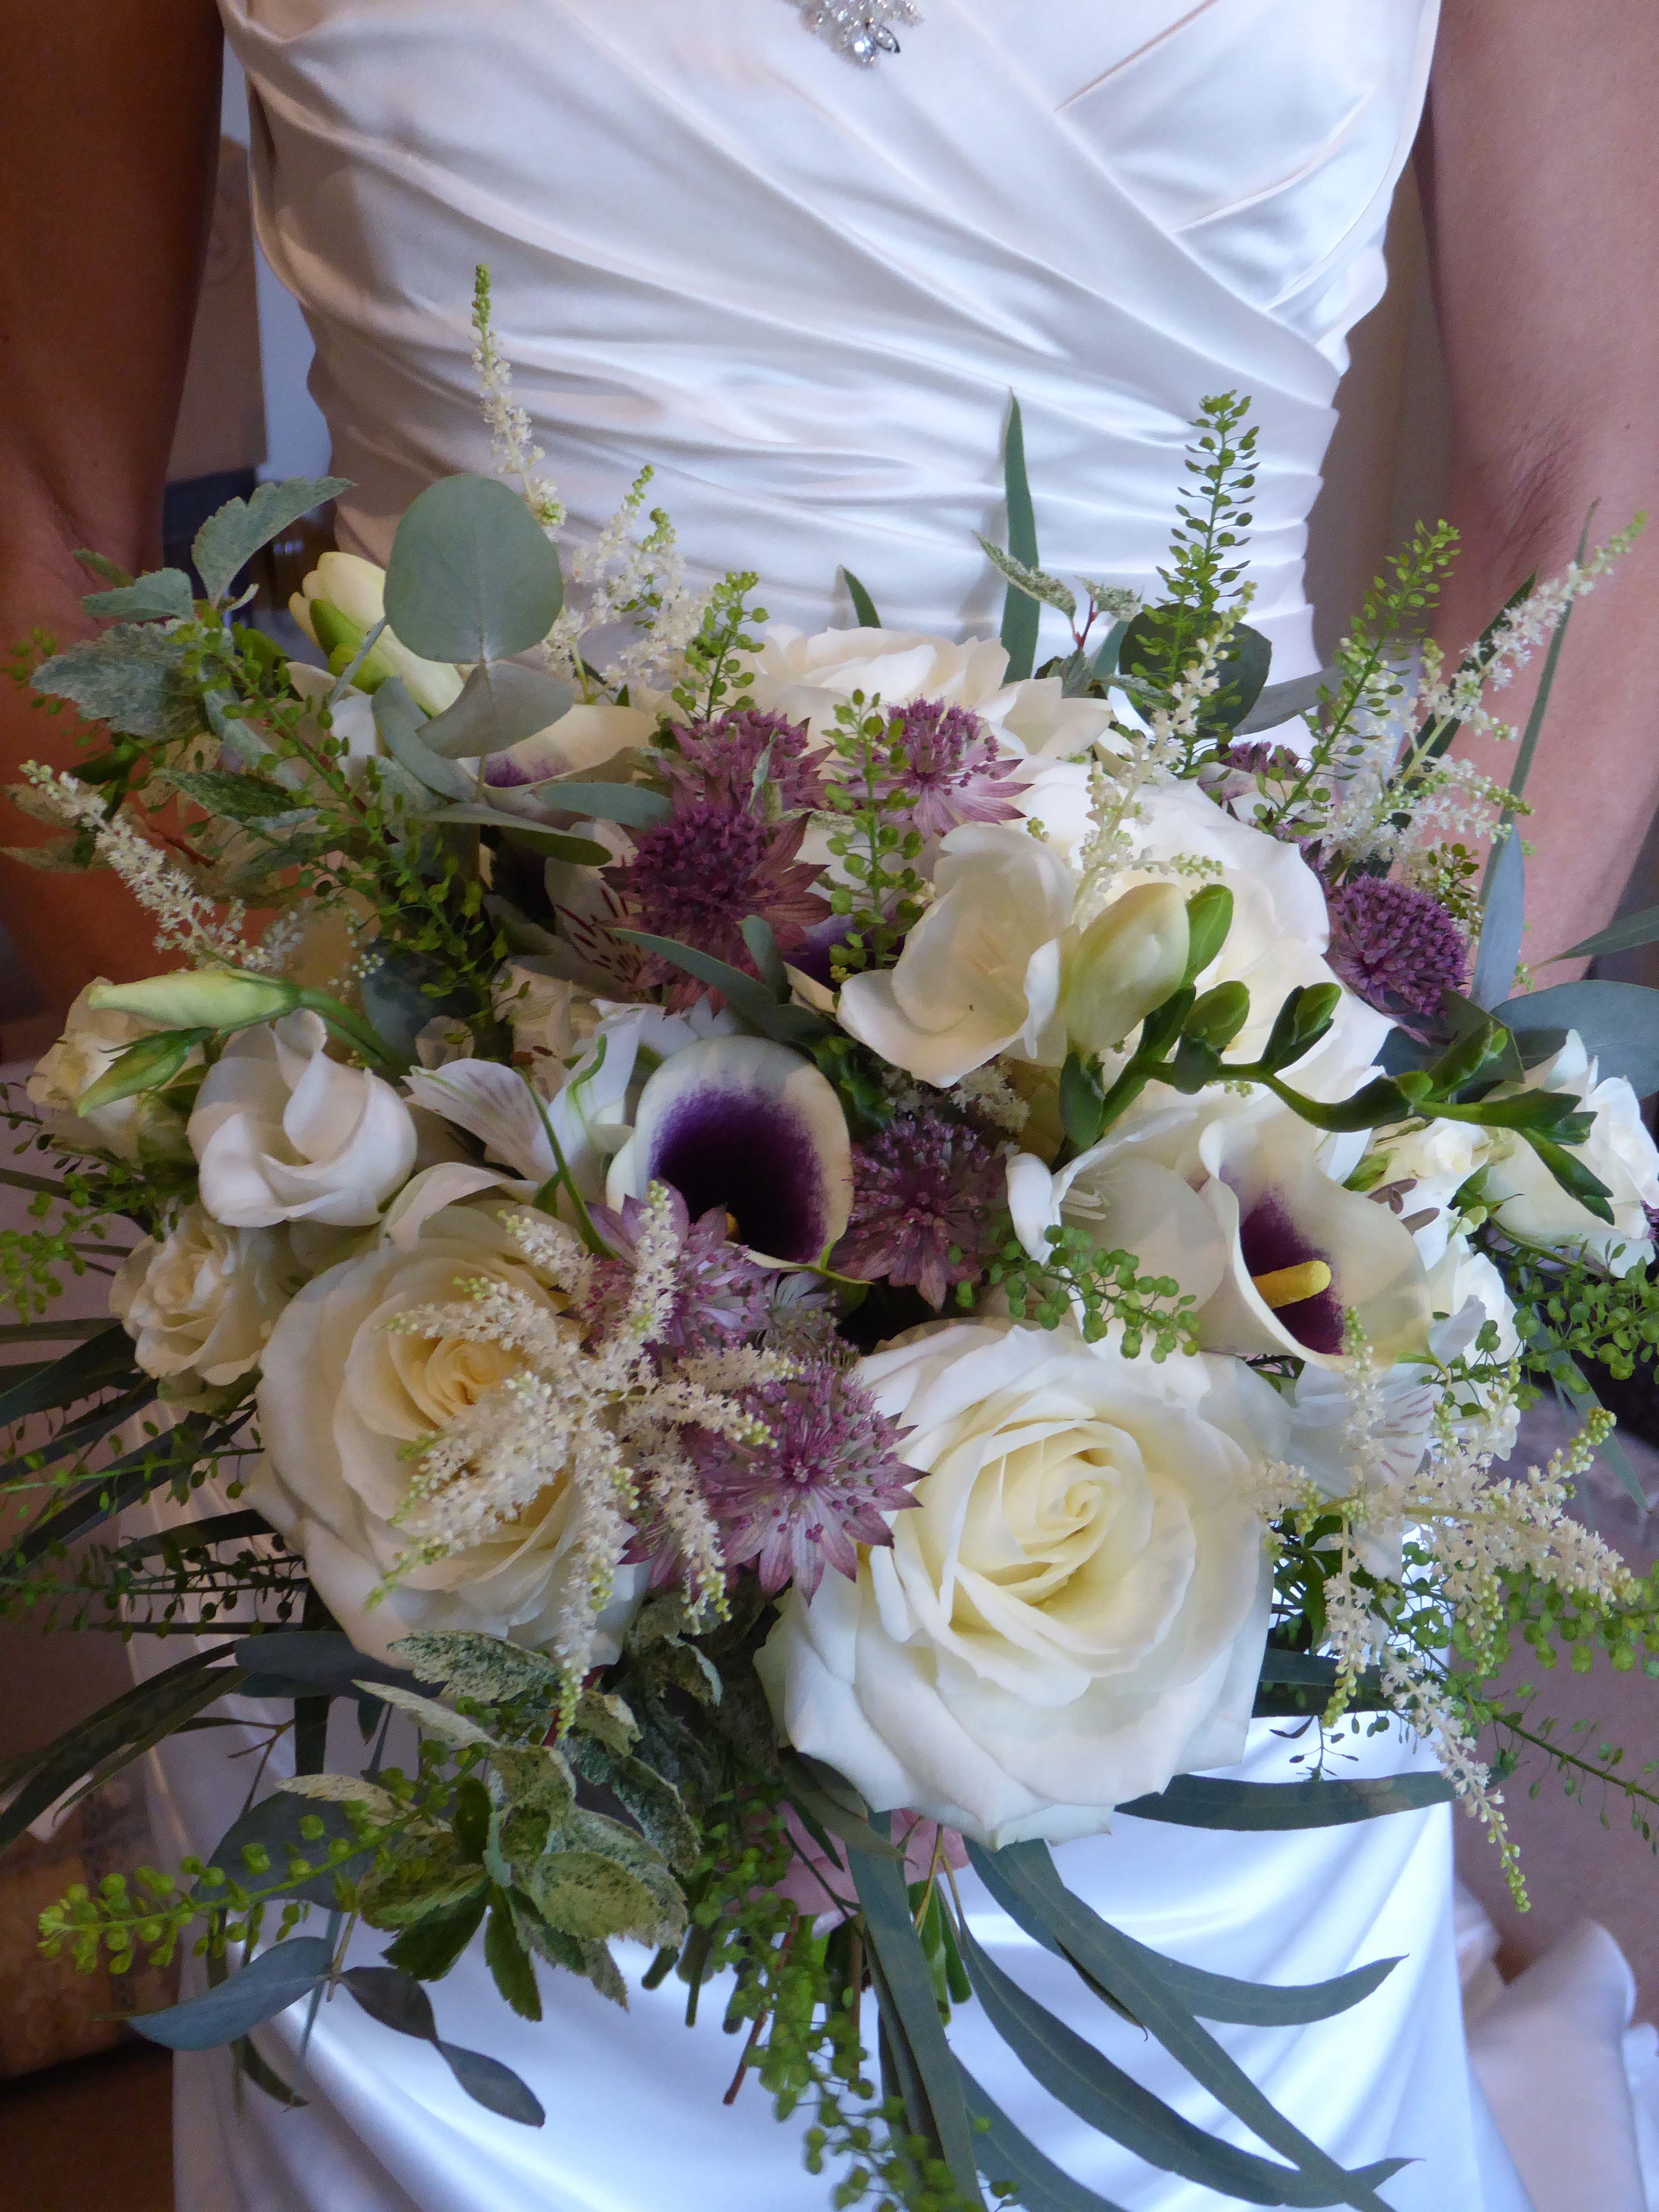 Bridal bouquet relaxed, natural, white & aubergine with